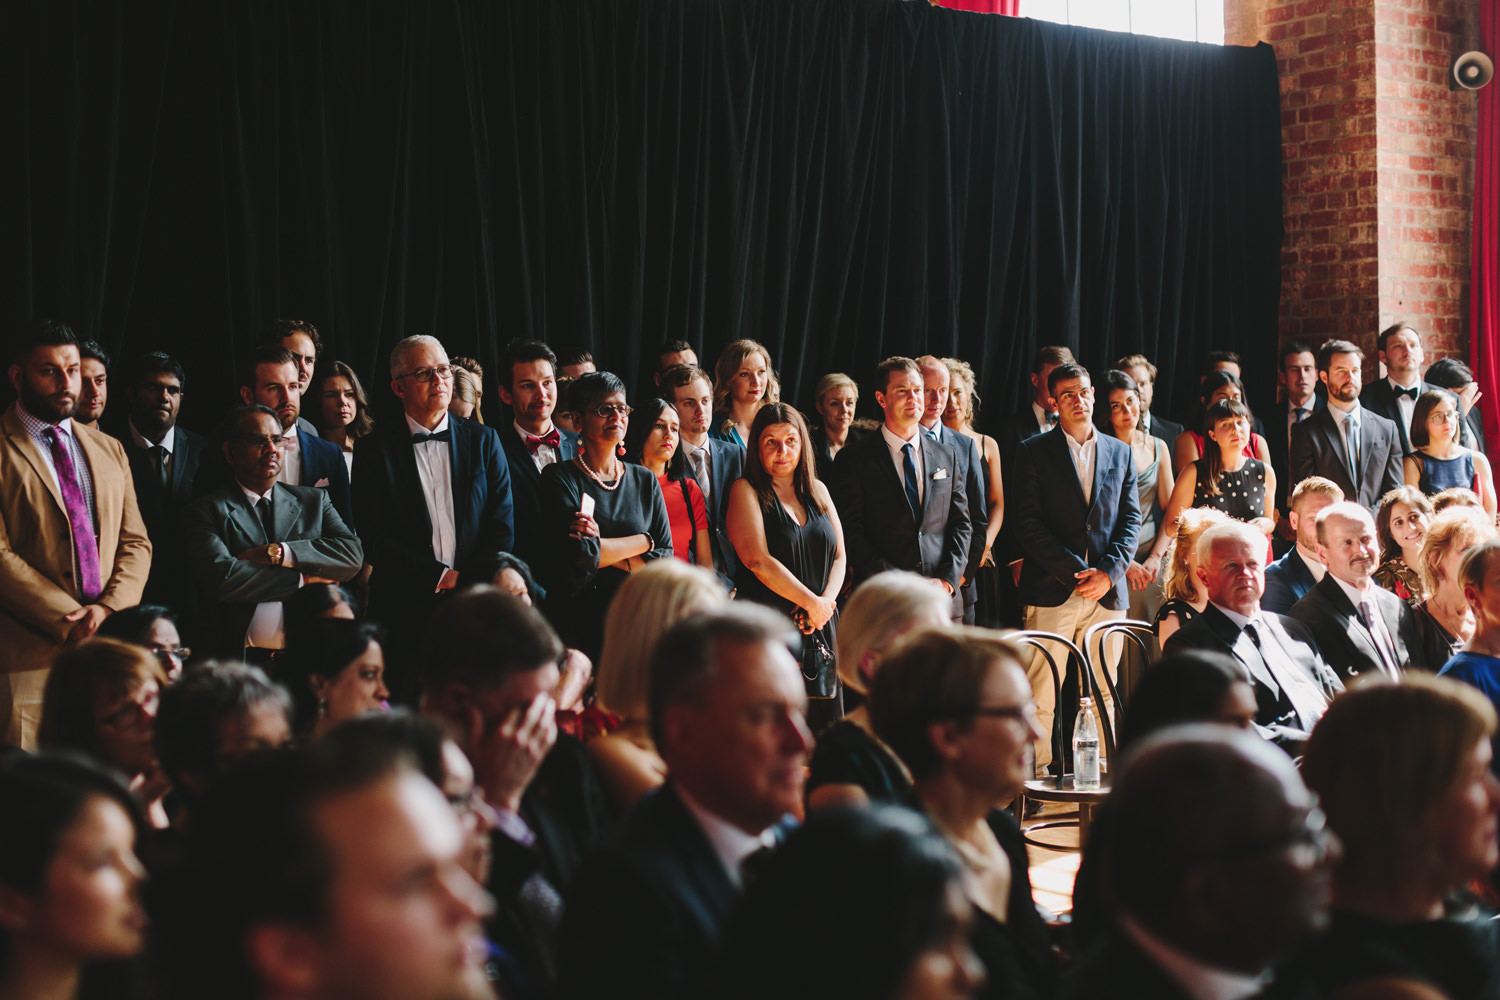 Warehouse_Wedding_Melbourne_Navin_Elly045.JPG